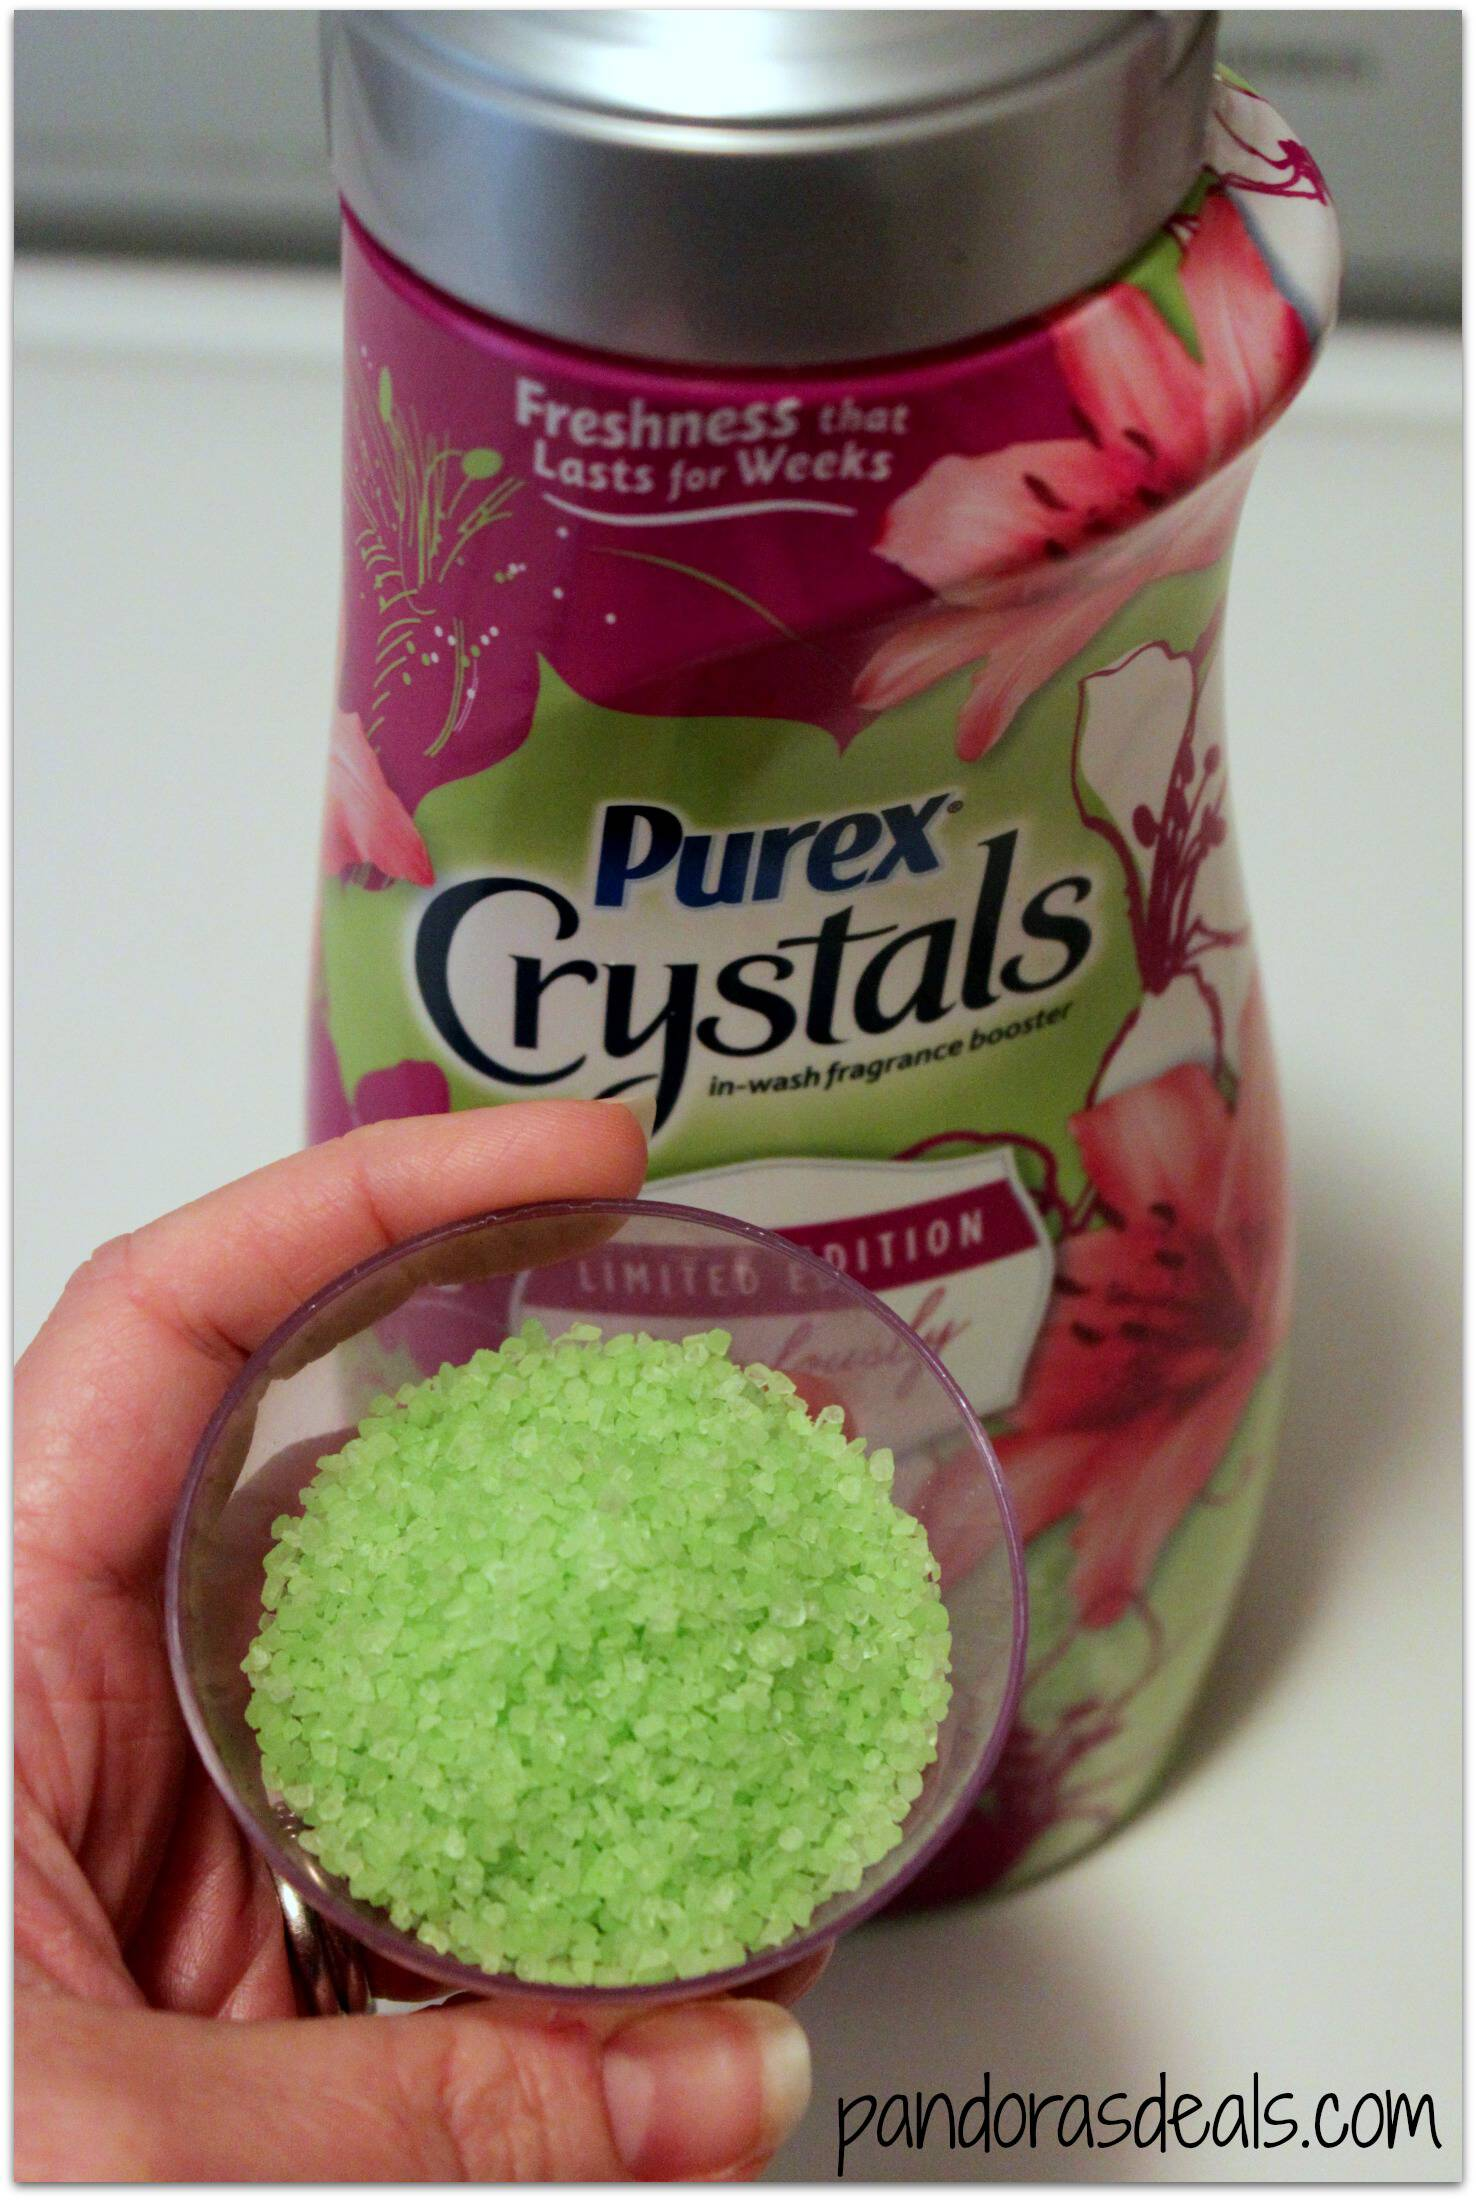 Purex Crystals Limited Edition